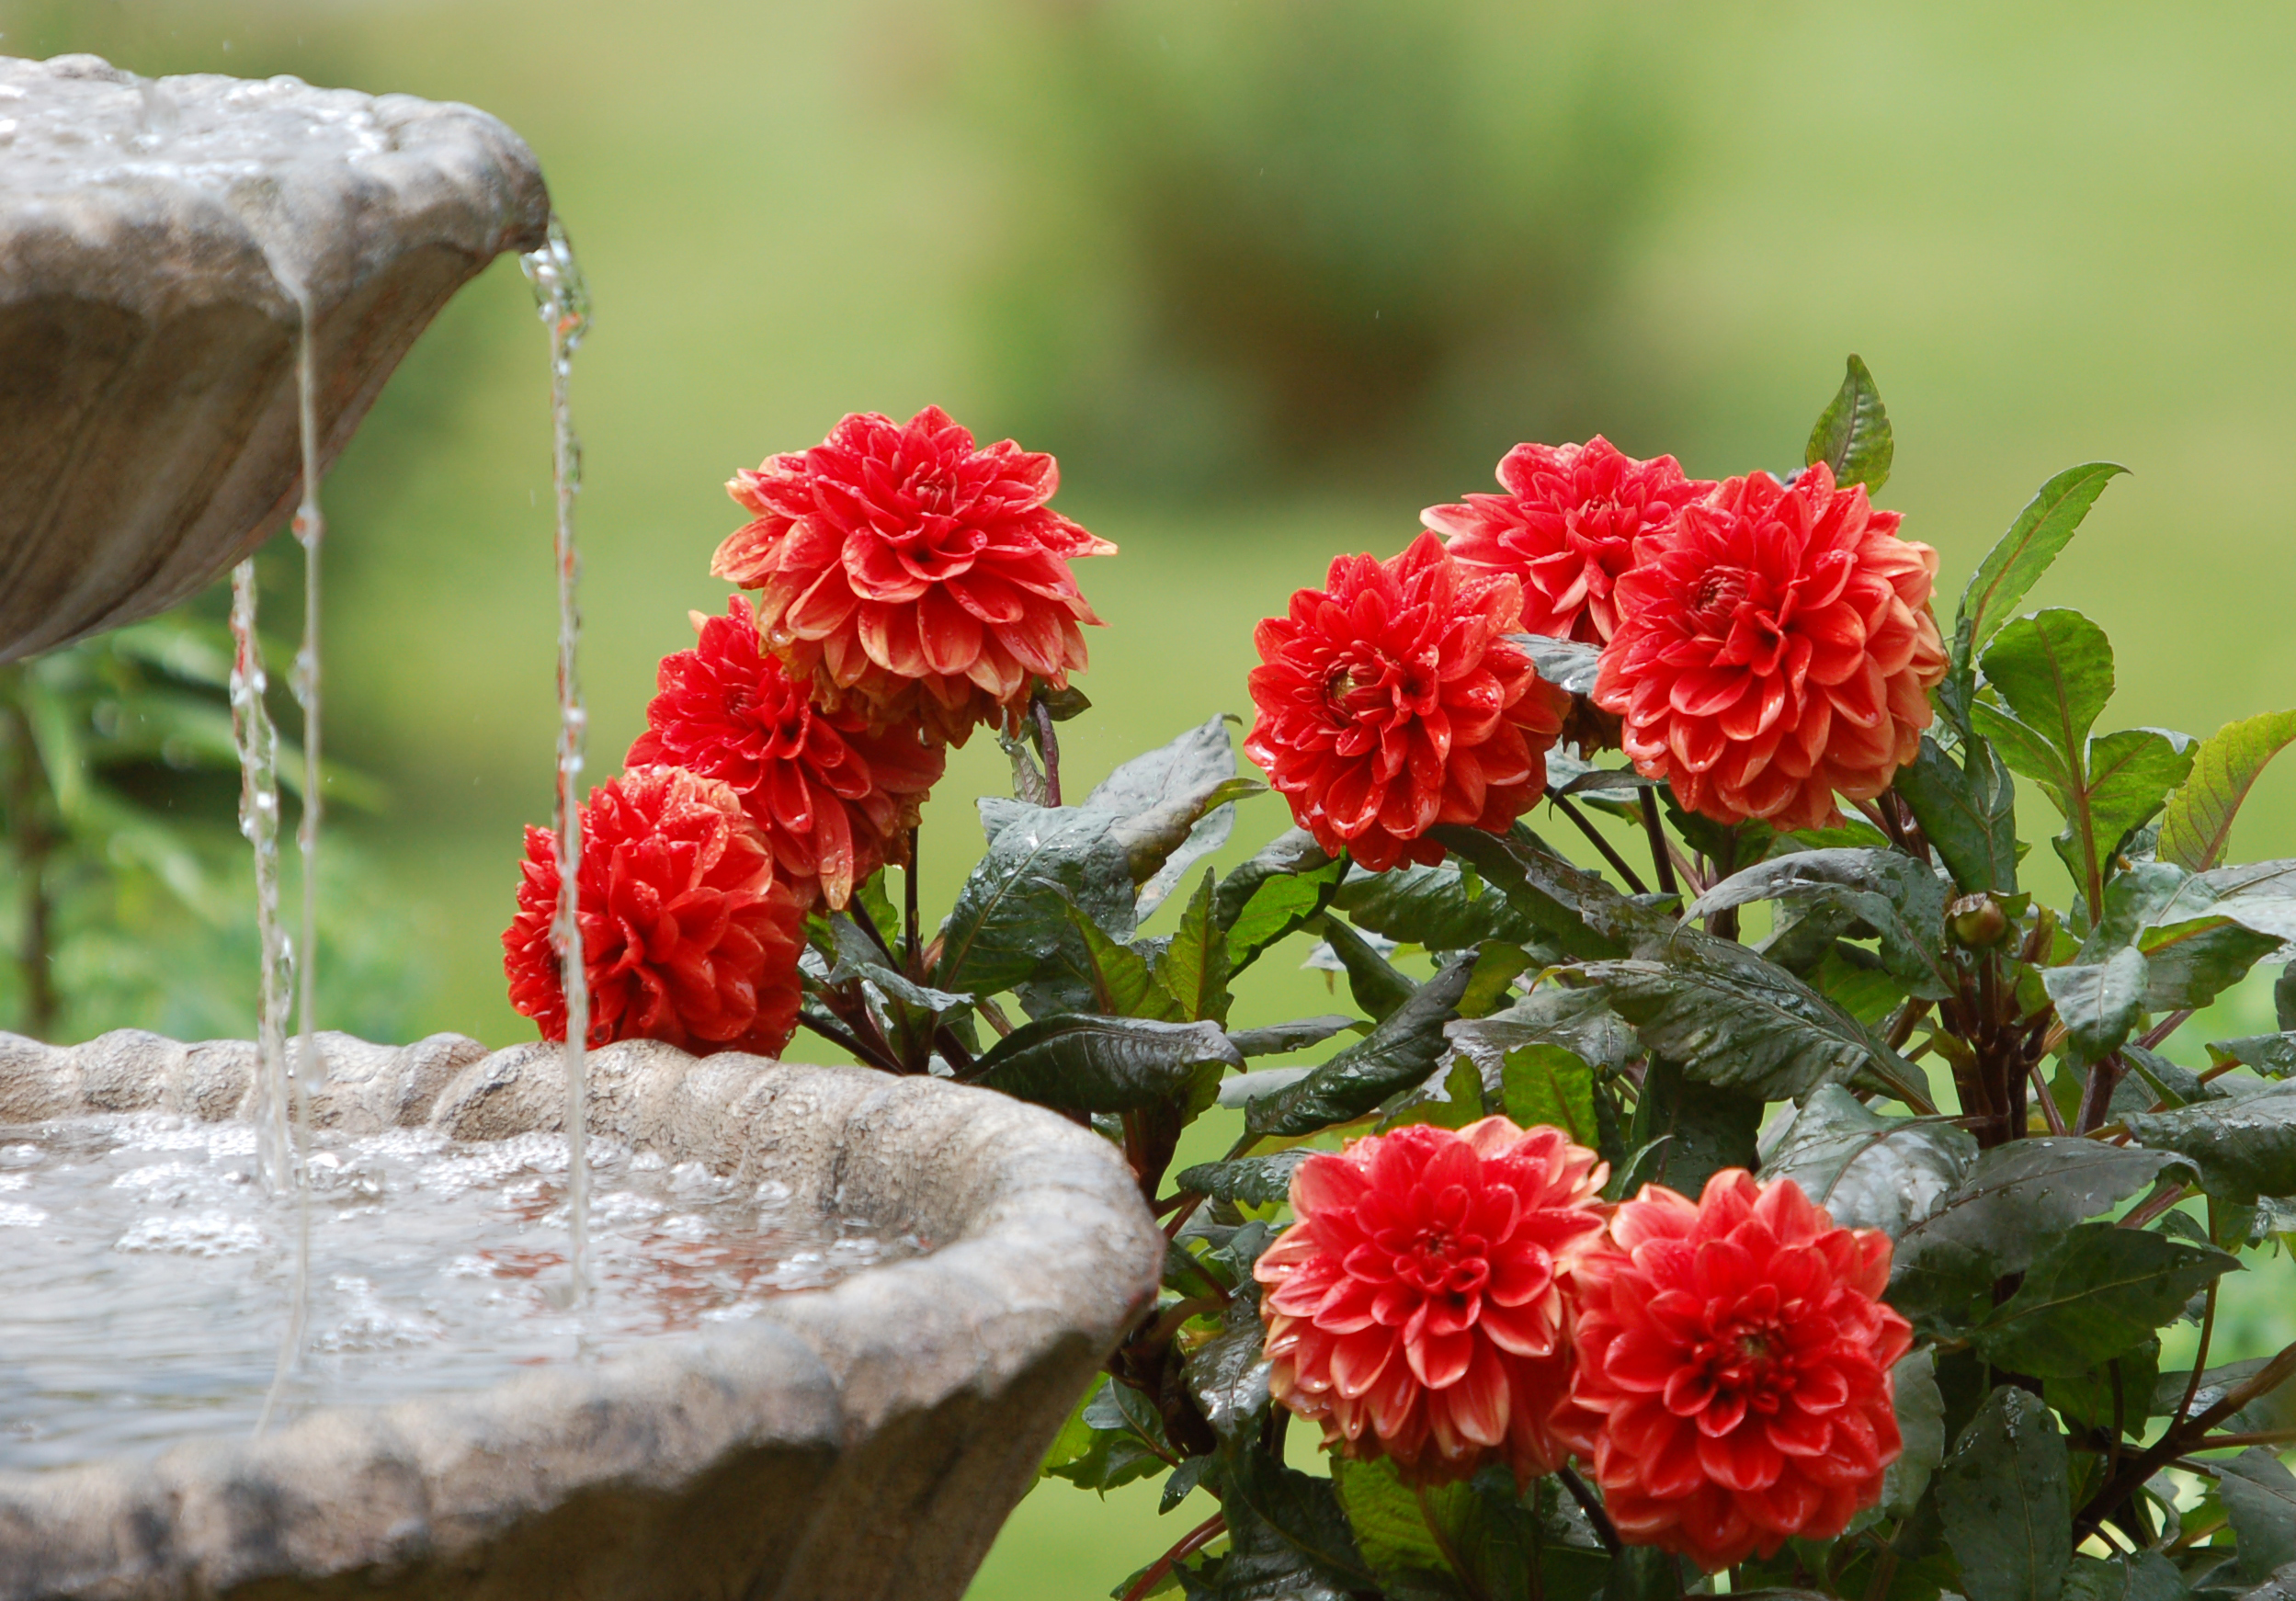 Red Iphone 7 Plus Wallpaper Dahlias And Water Fountain Full Hd Wallpaper And